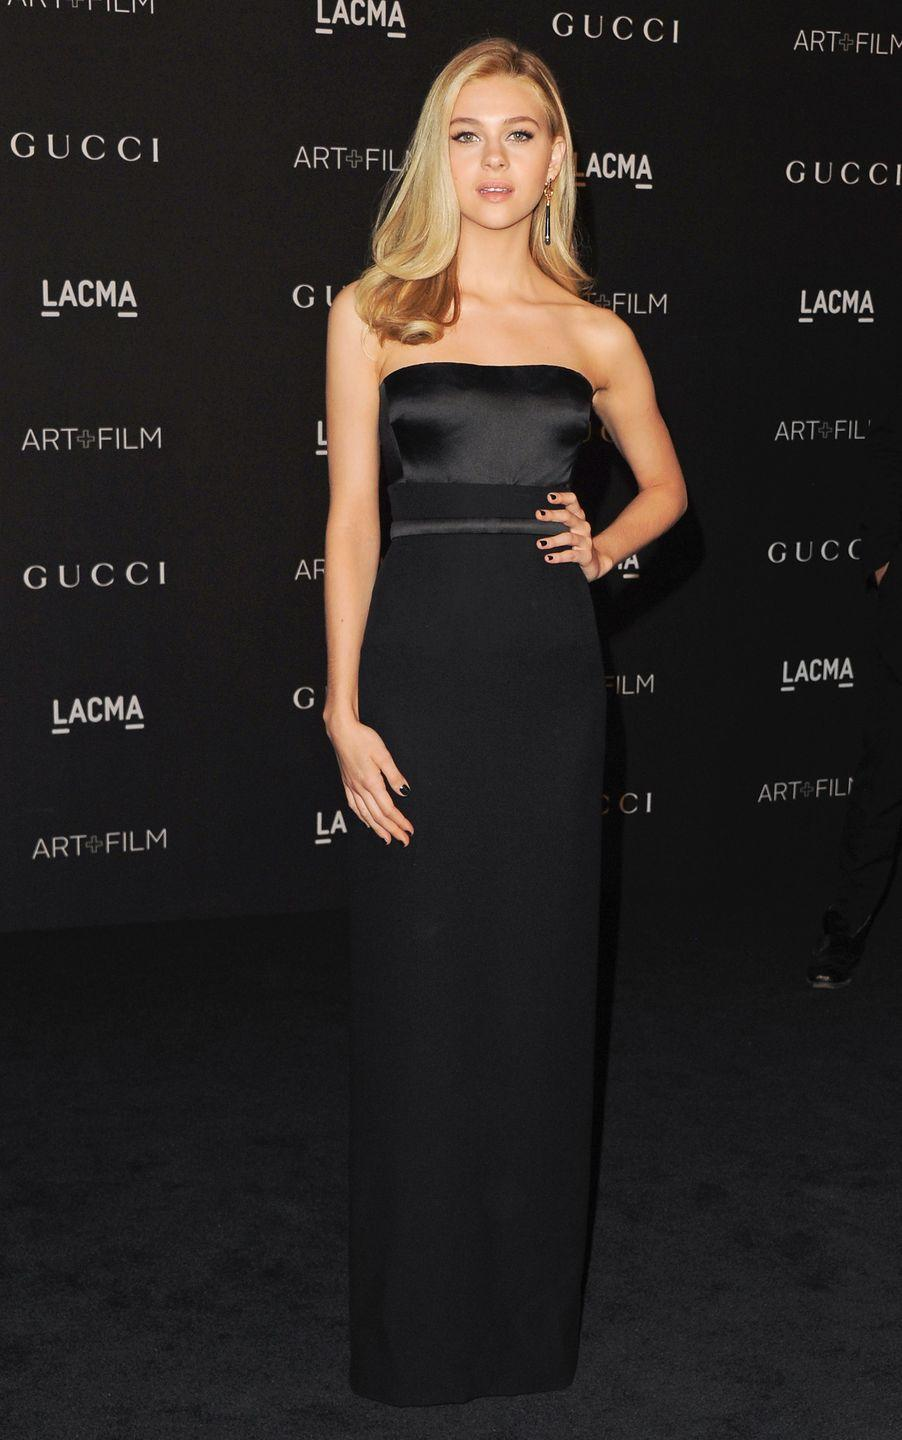 <p>The actor wore a black floor-length, strapless Gucci dress to the gala. <br></p>